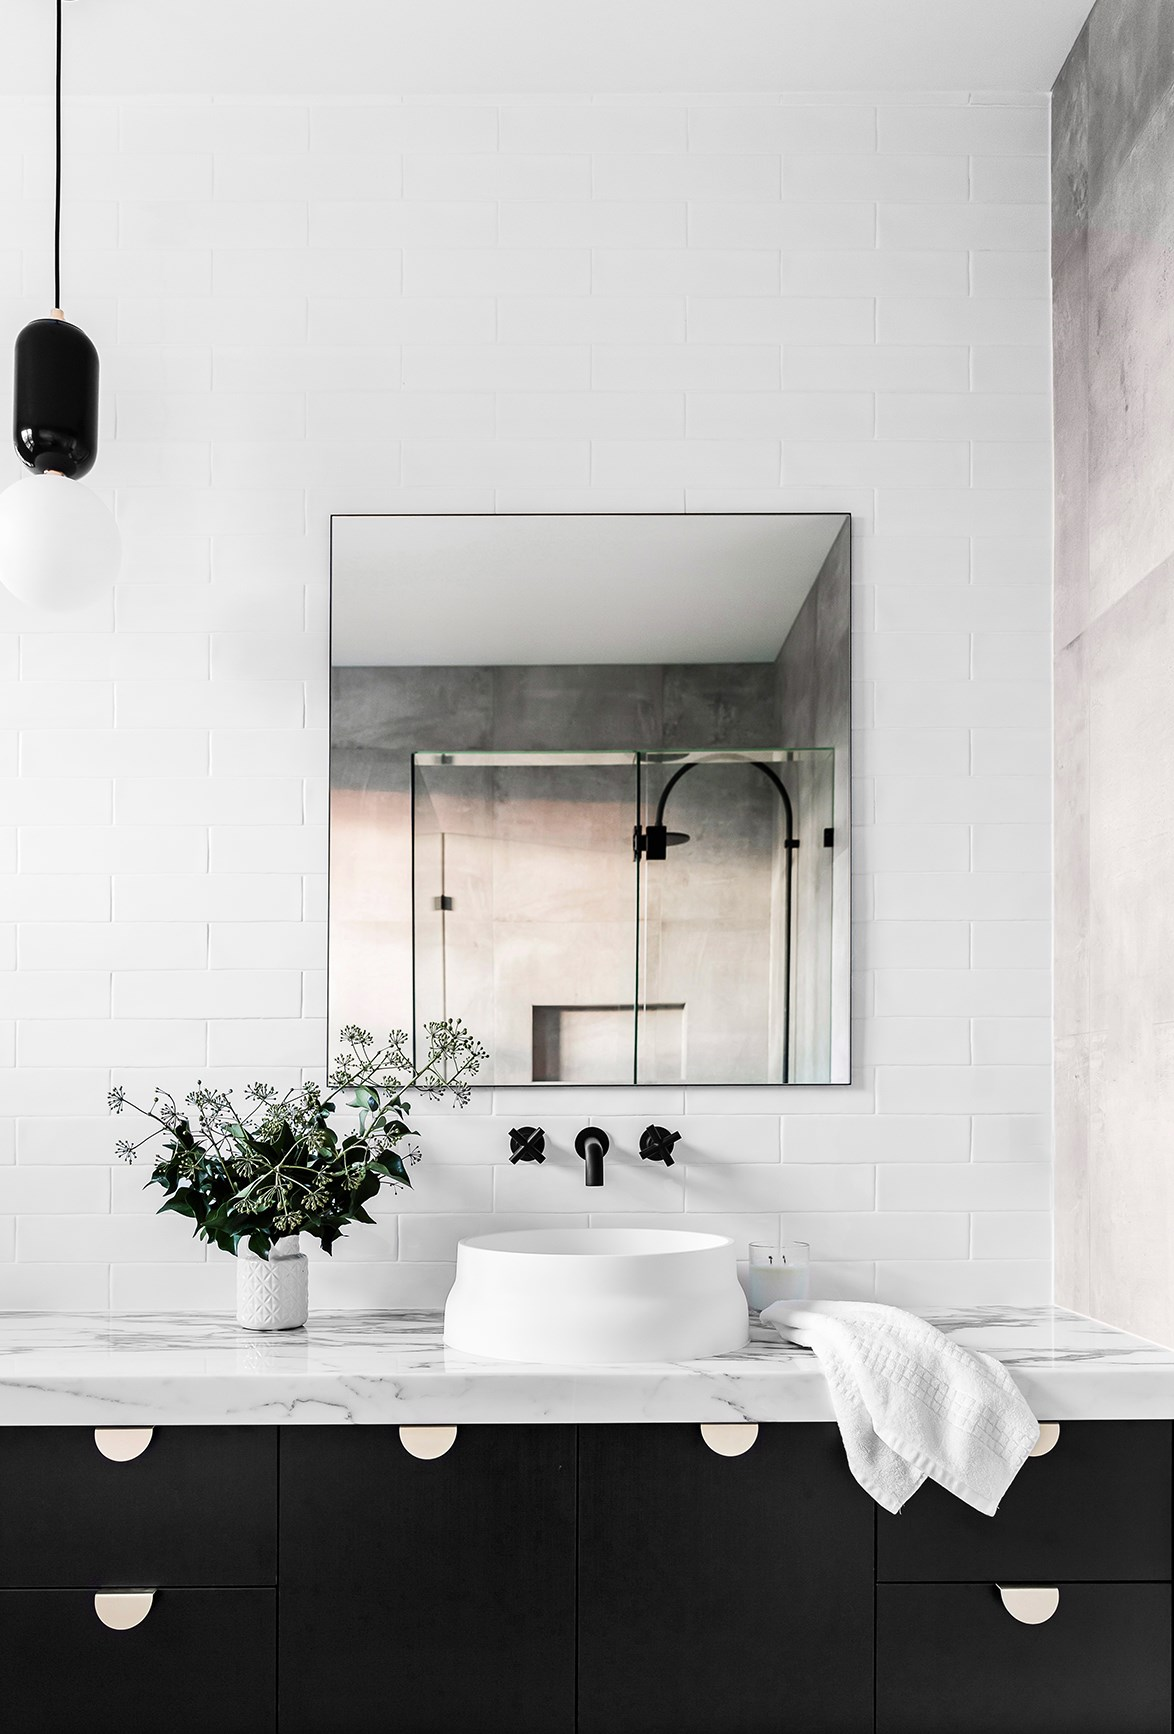 """**MONOCHROME**<p> <P>A [monochrome interior](https://www.homestolove.com.au/monochrome-bathrooms-6390